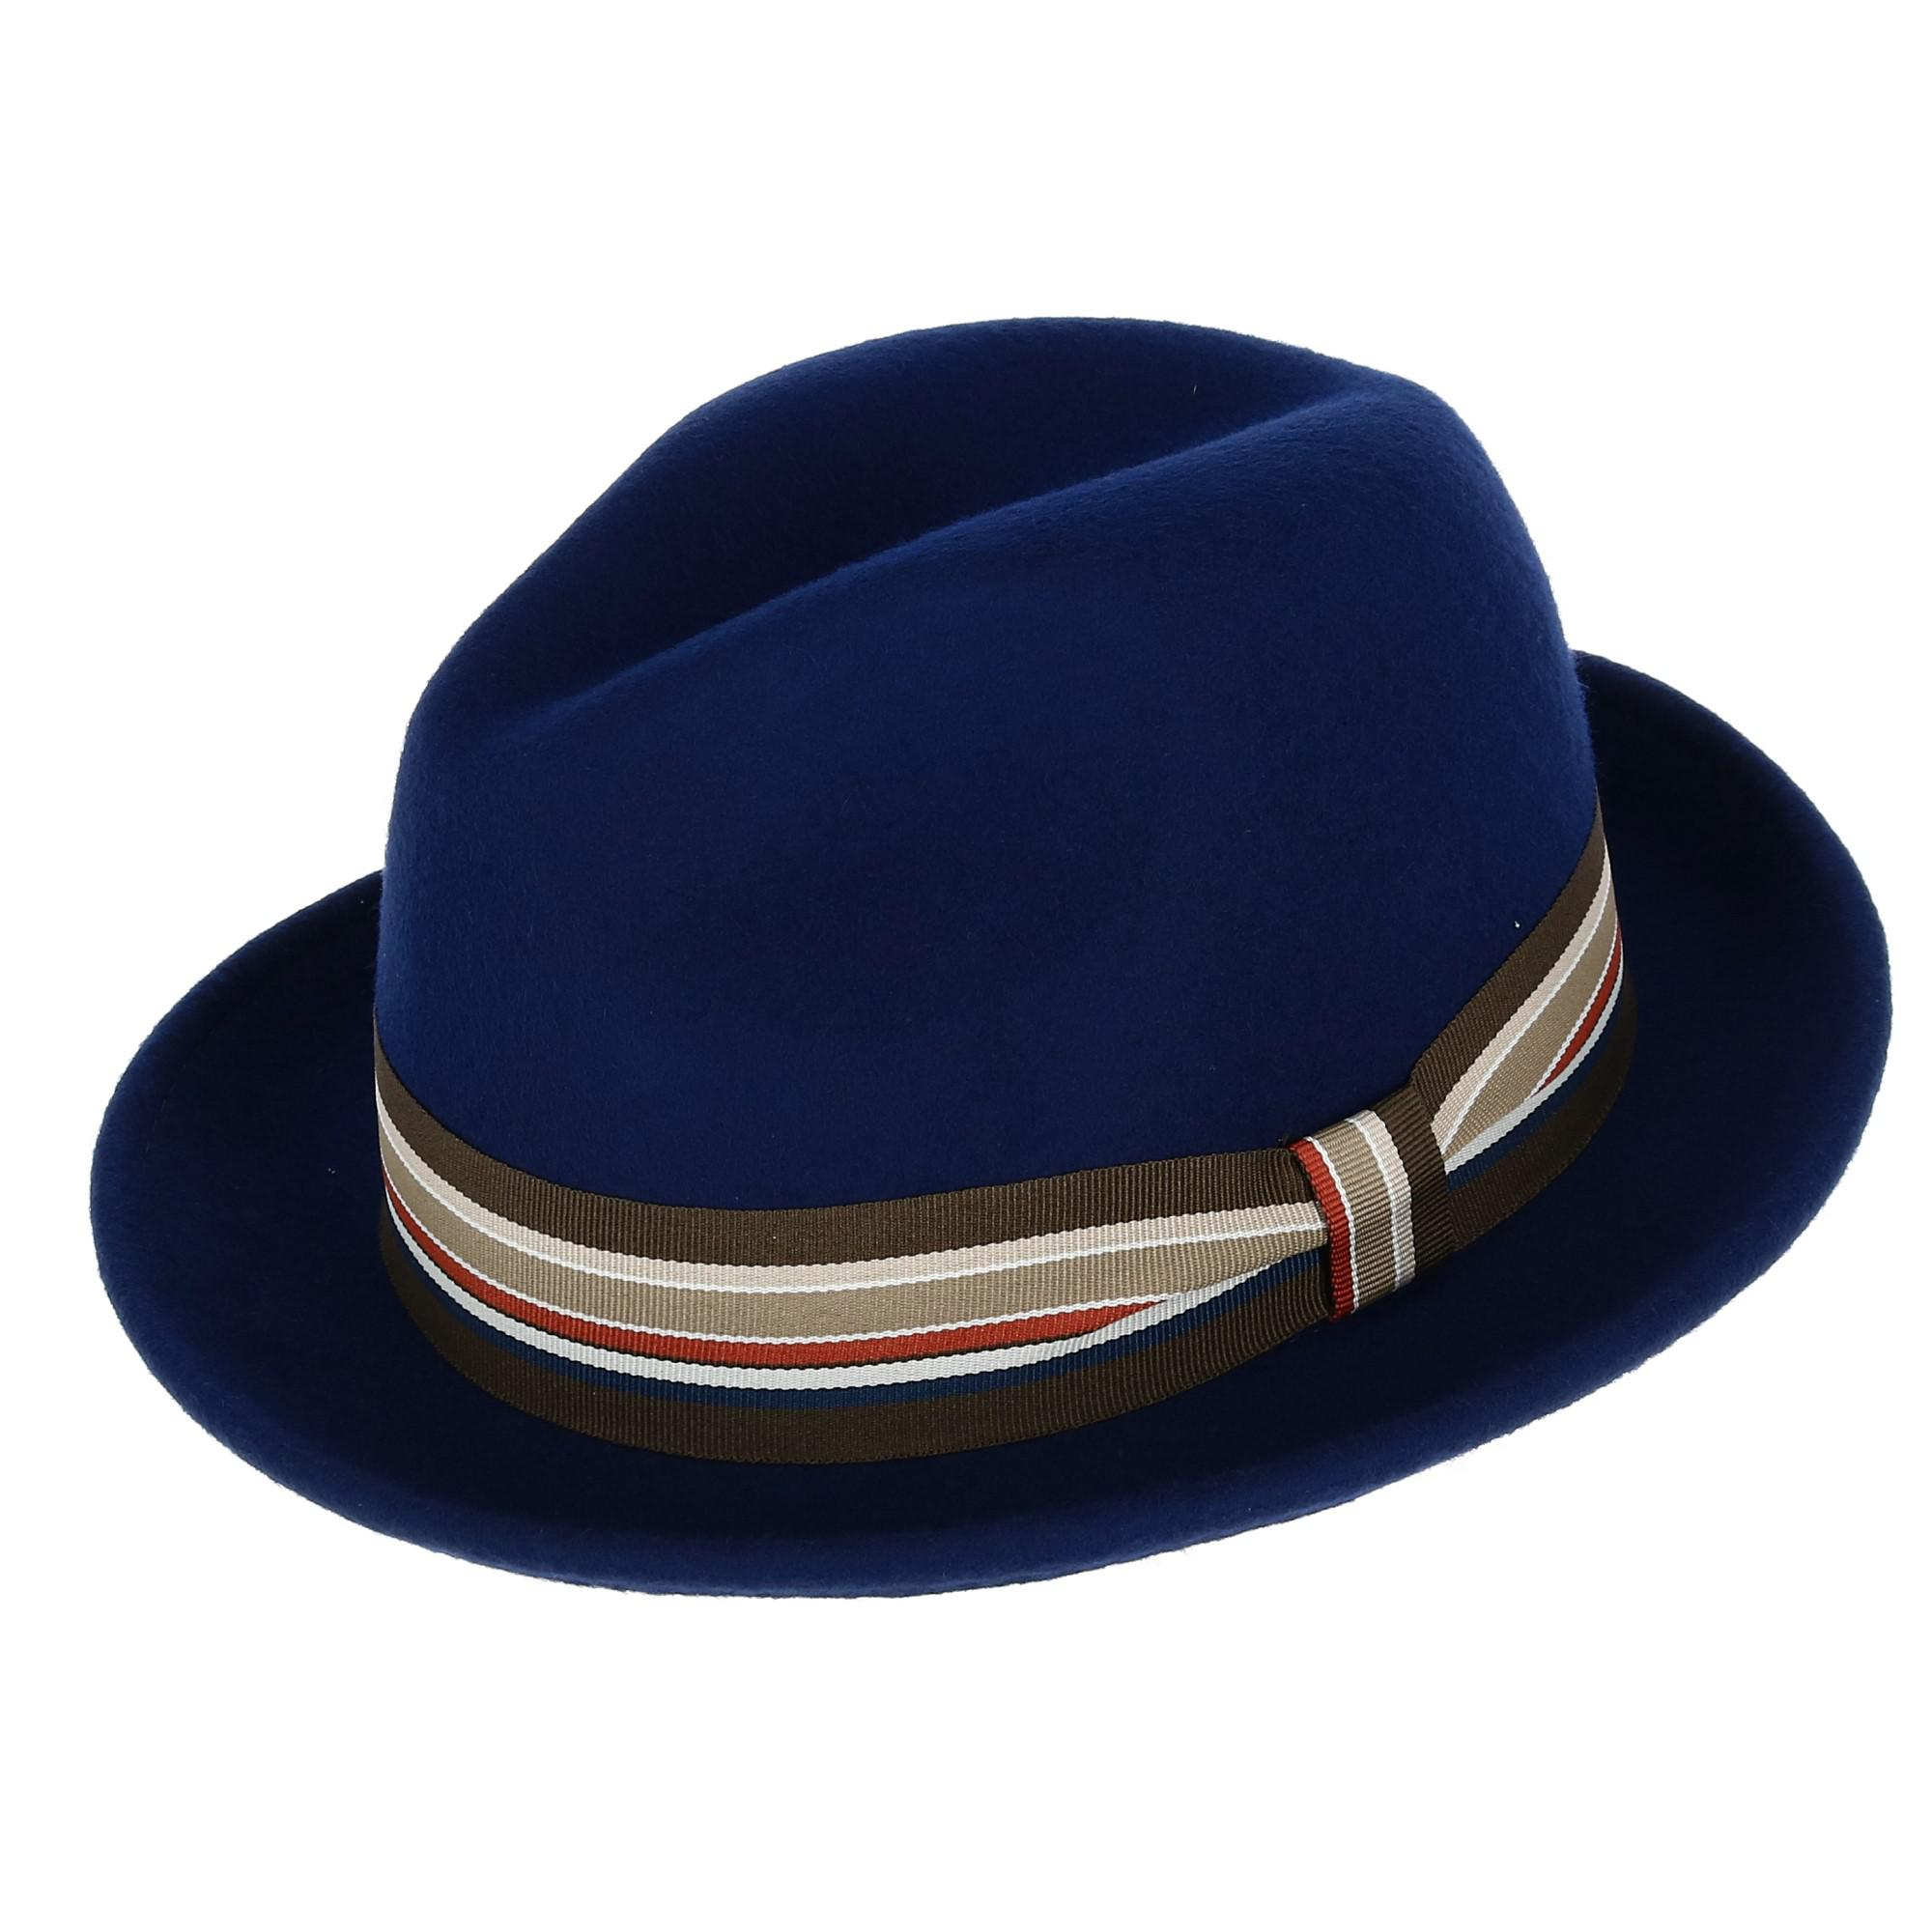 db51ee5053dc8 Broner Men s Wool Felt Fedora with Striped Grosgrain Ribbon Band  (BR-7363-NAV